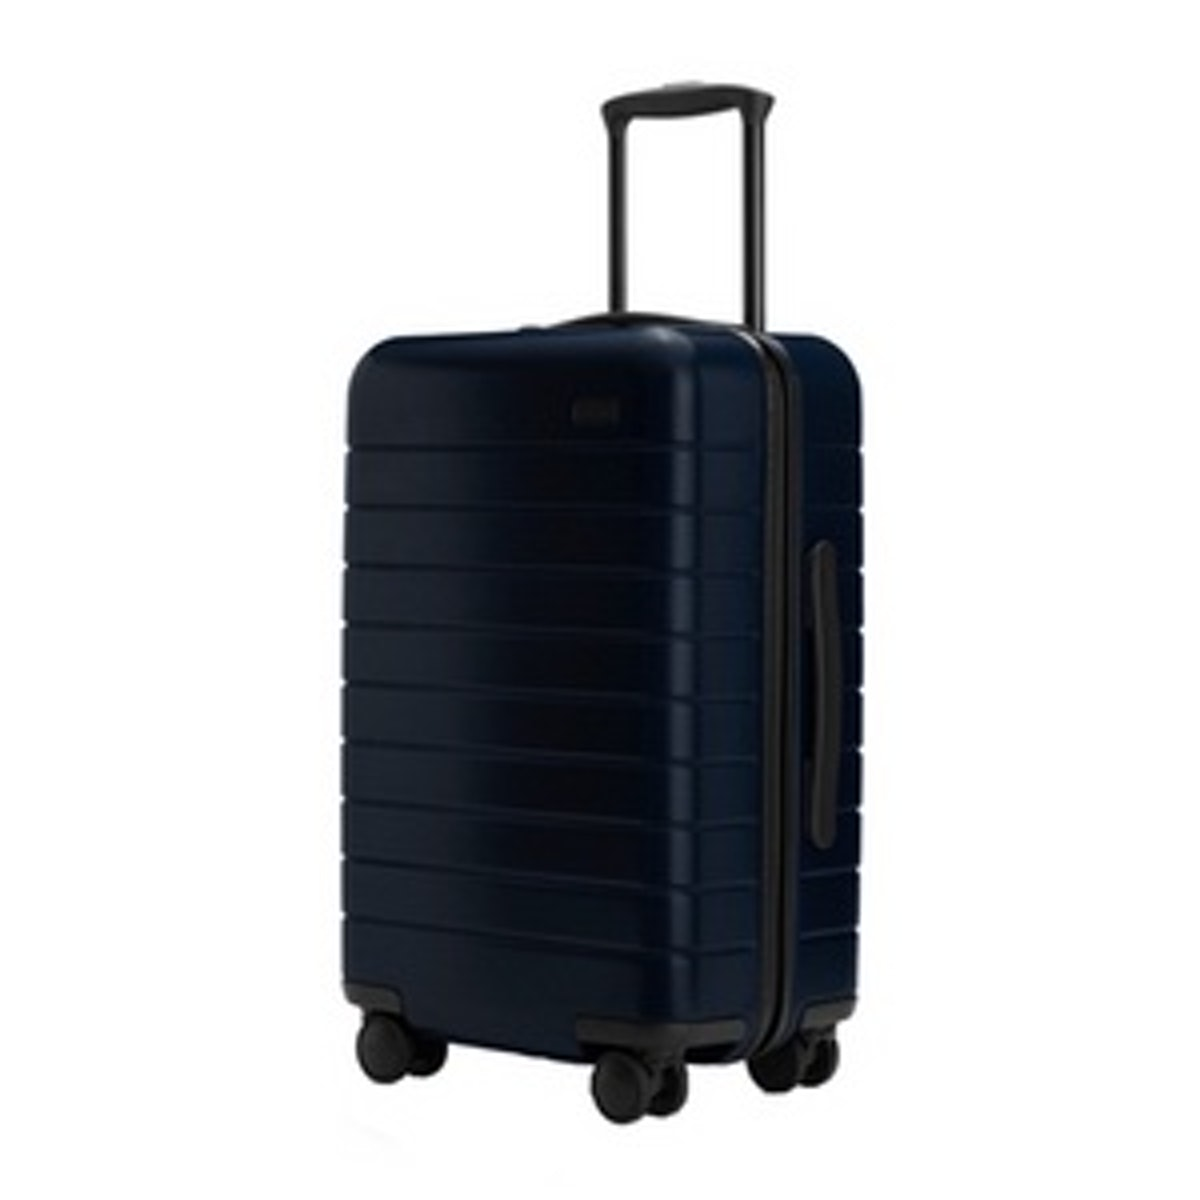 The Carry-On